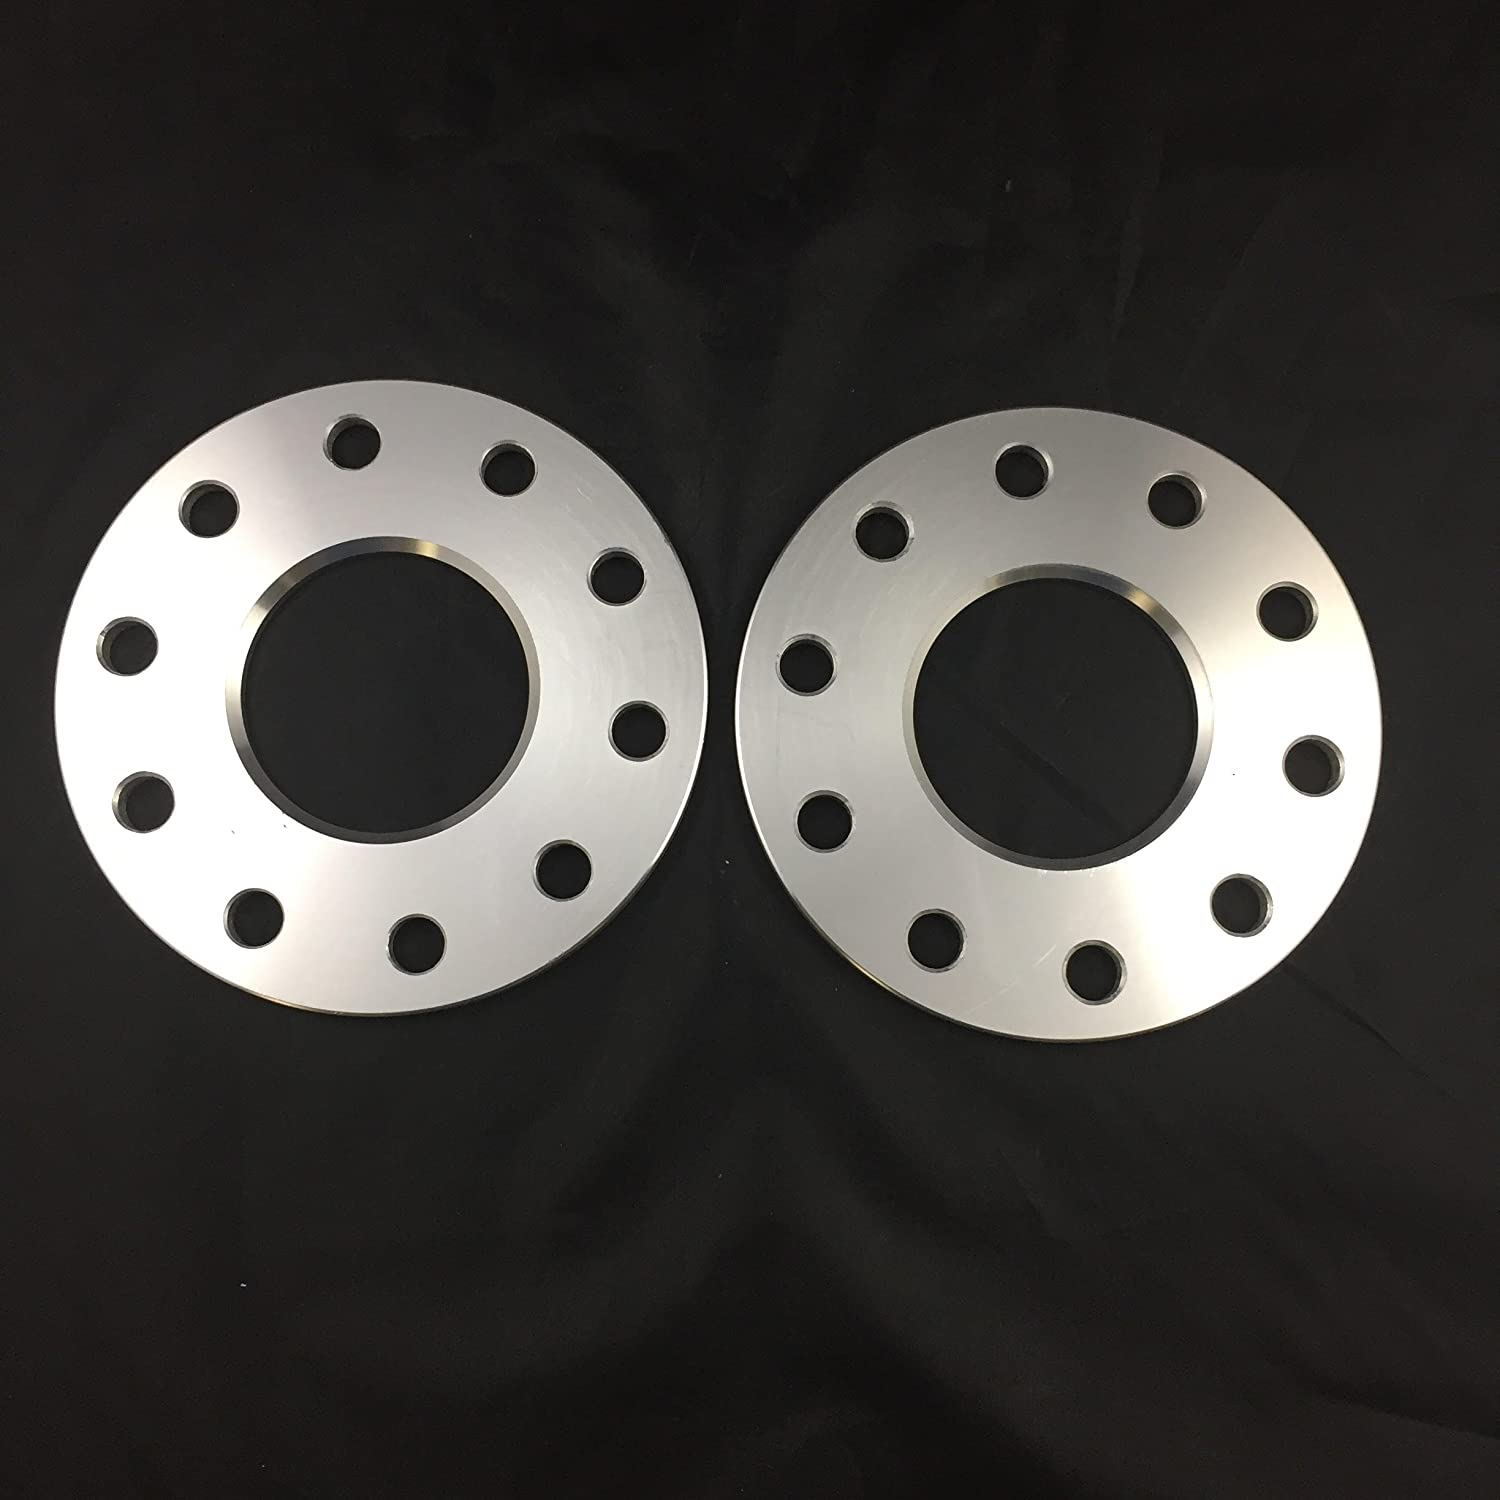 2 Pieces 0.47 12mm Hub Centric Wheel Spacers Adapters Bolt Pattern 5x5.5 5x139.7 Center Bore 77.8mm For Ram 1500 2012 Newer